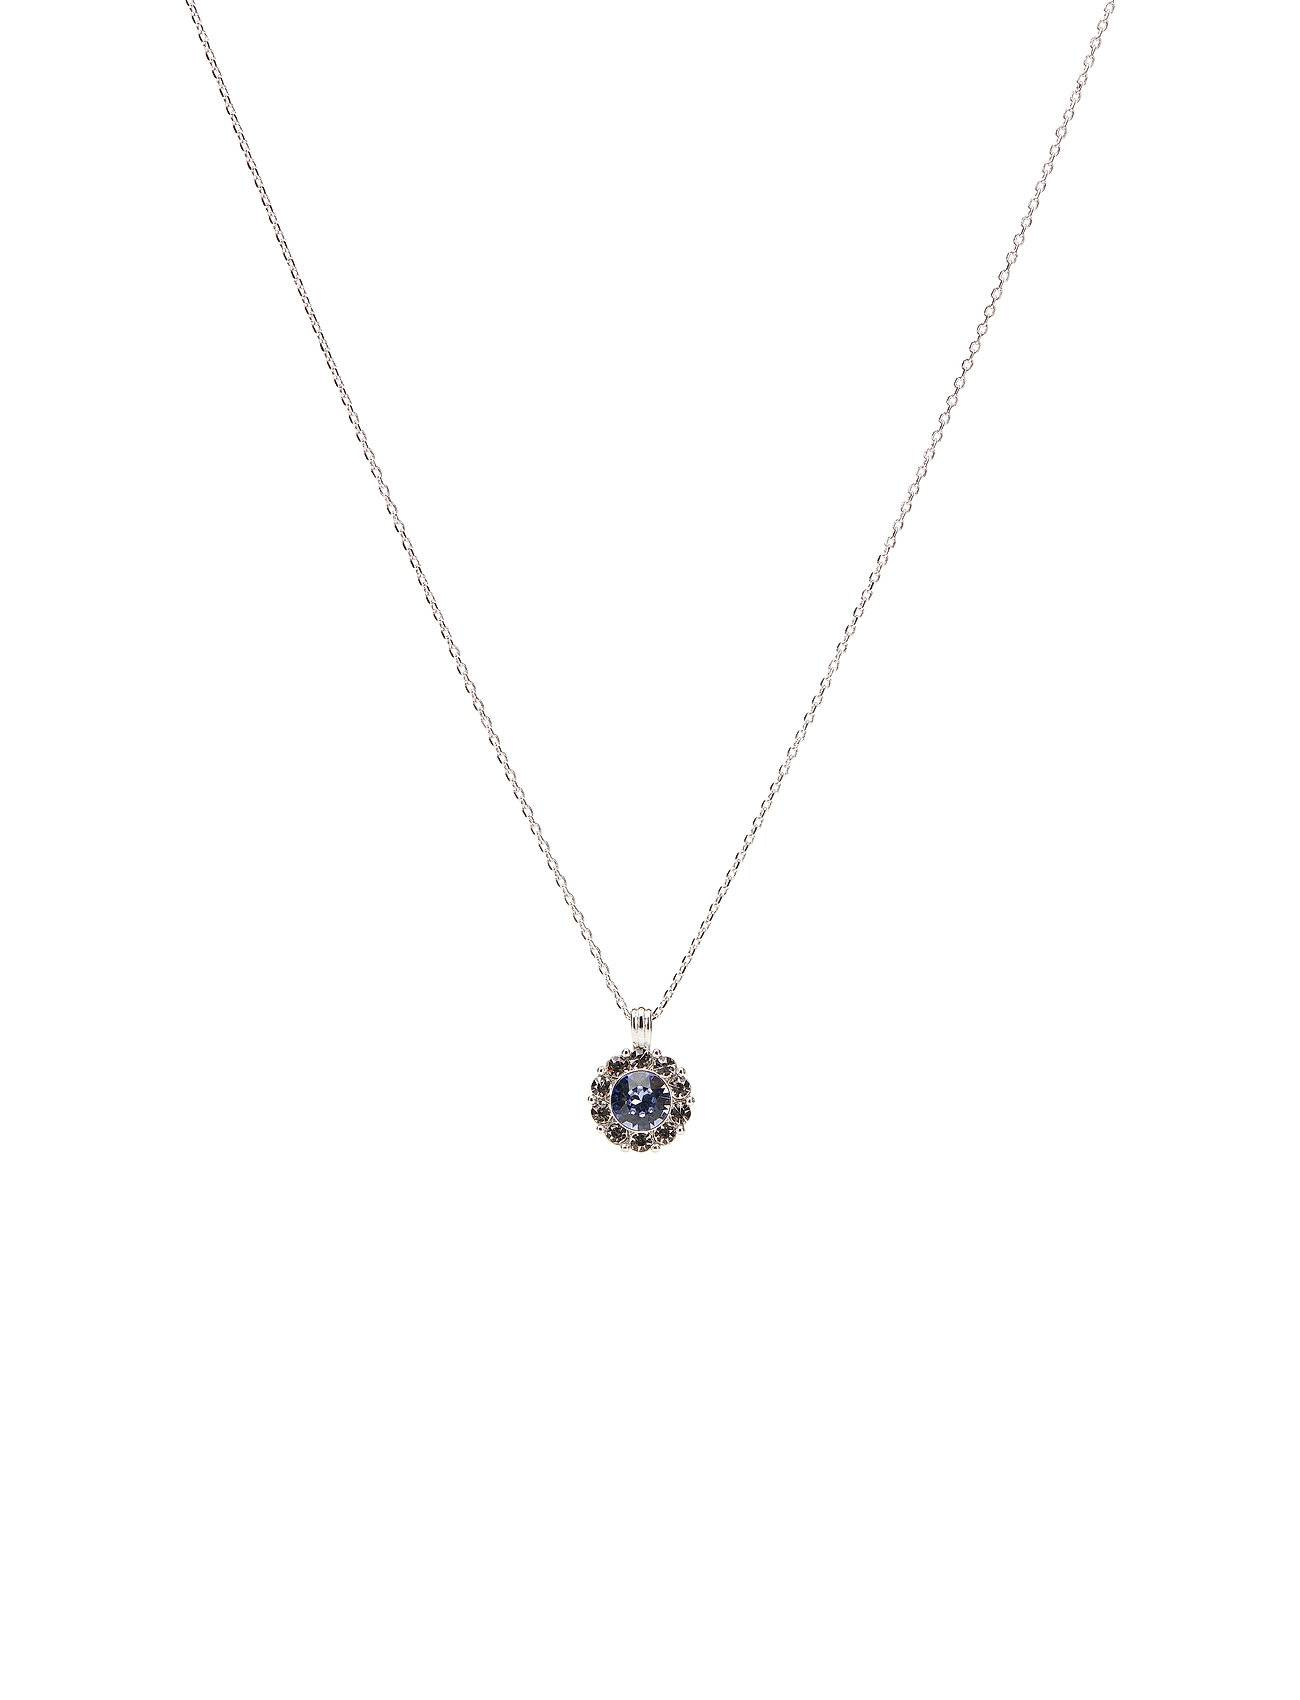 LILY AND ROSE Sofia Necklace - Light Sapphire Accessories Jewellery Necklaces Dainty Necklaces Hopea LILY AND ROSE